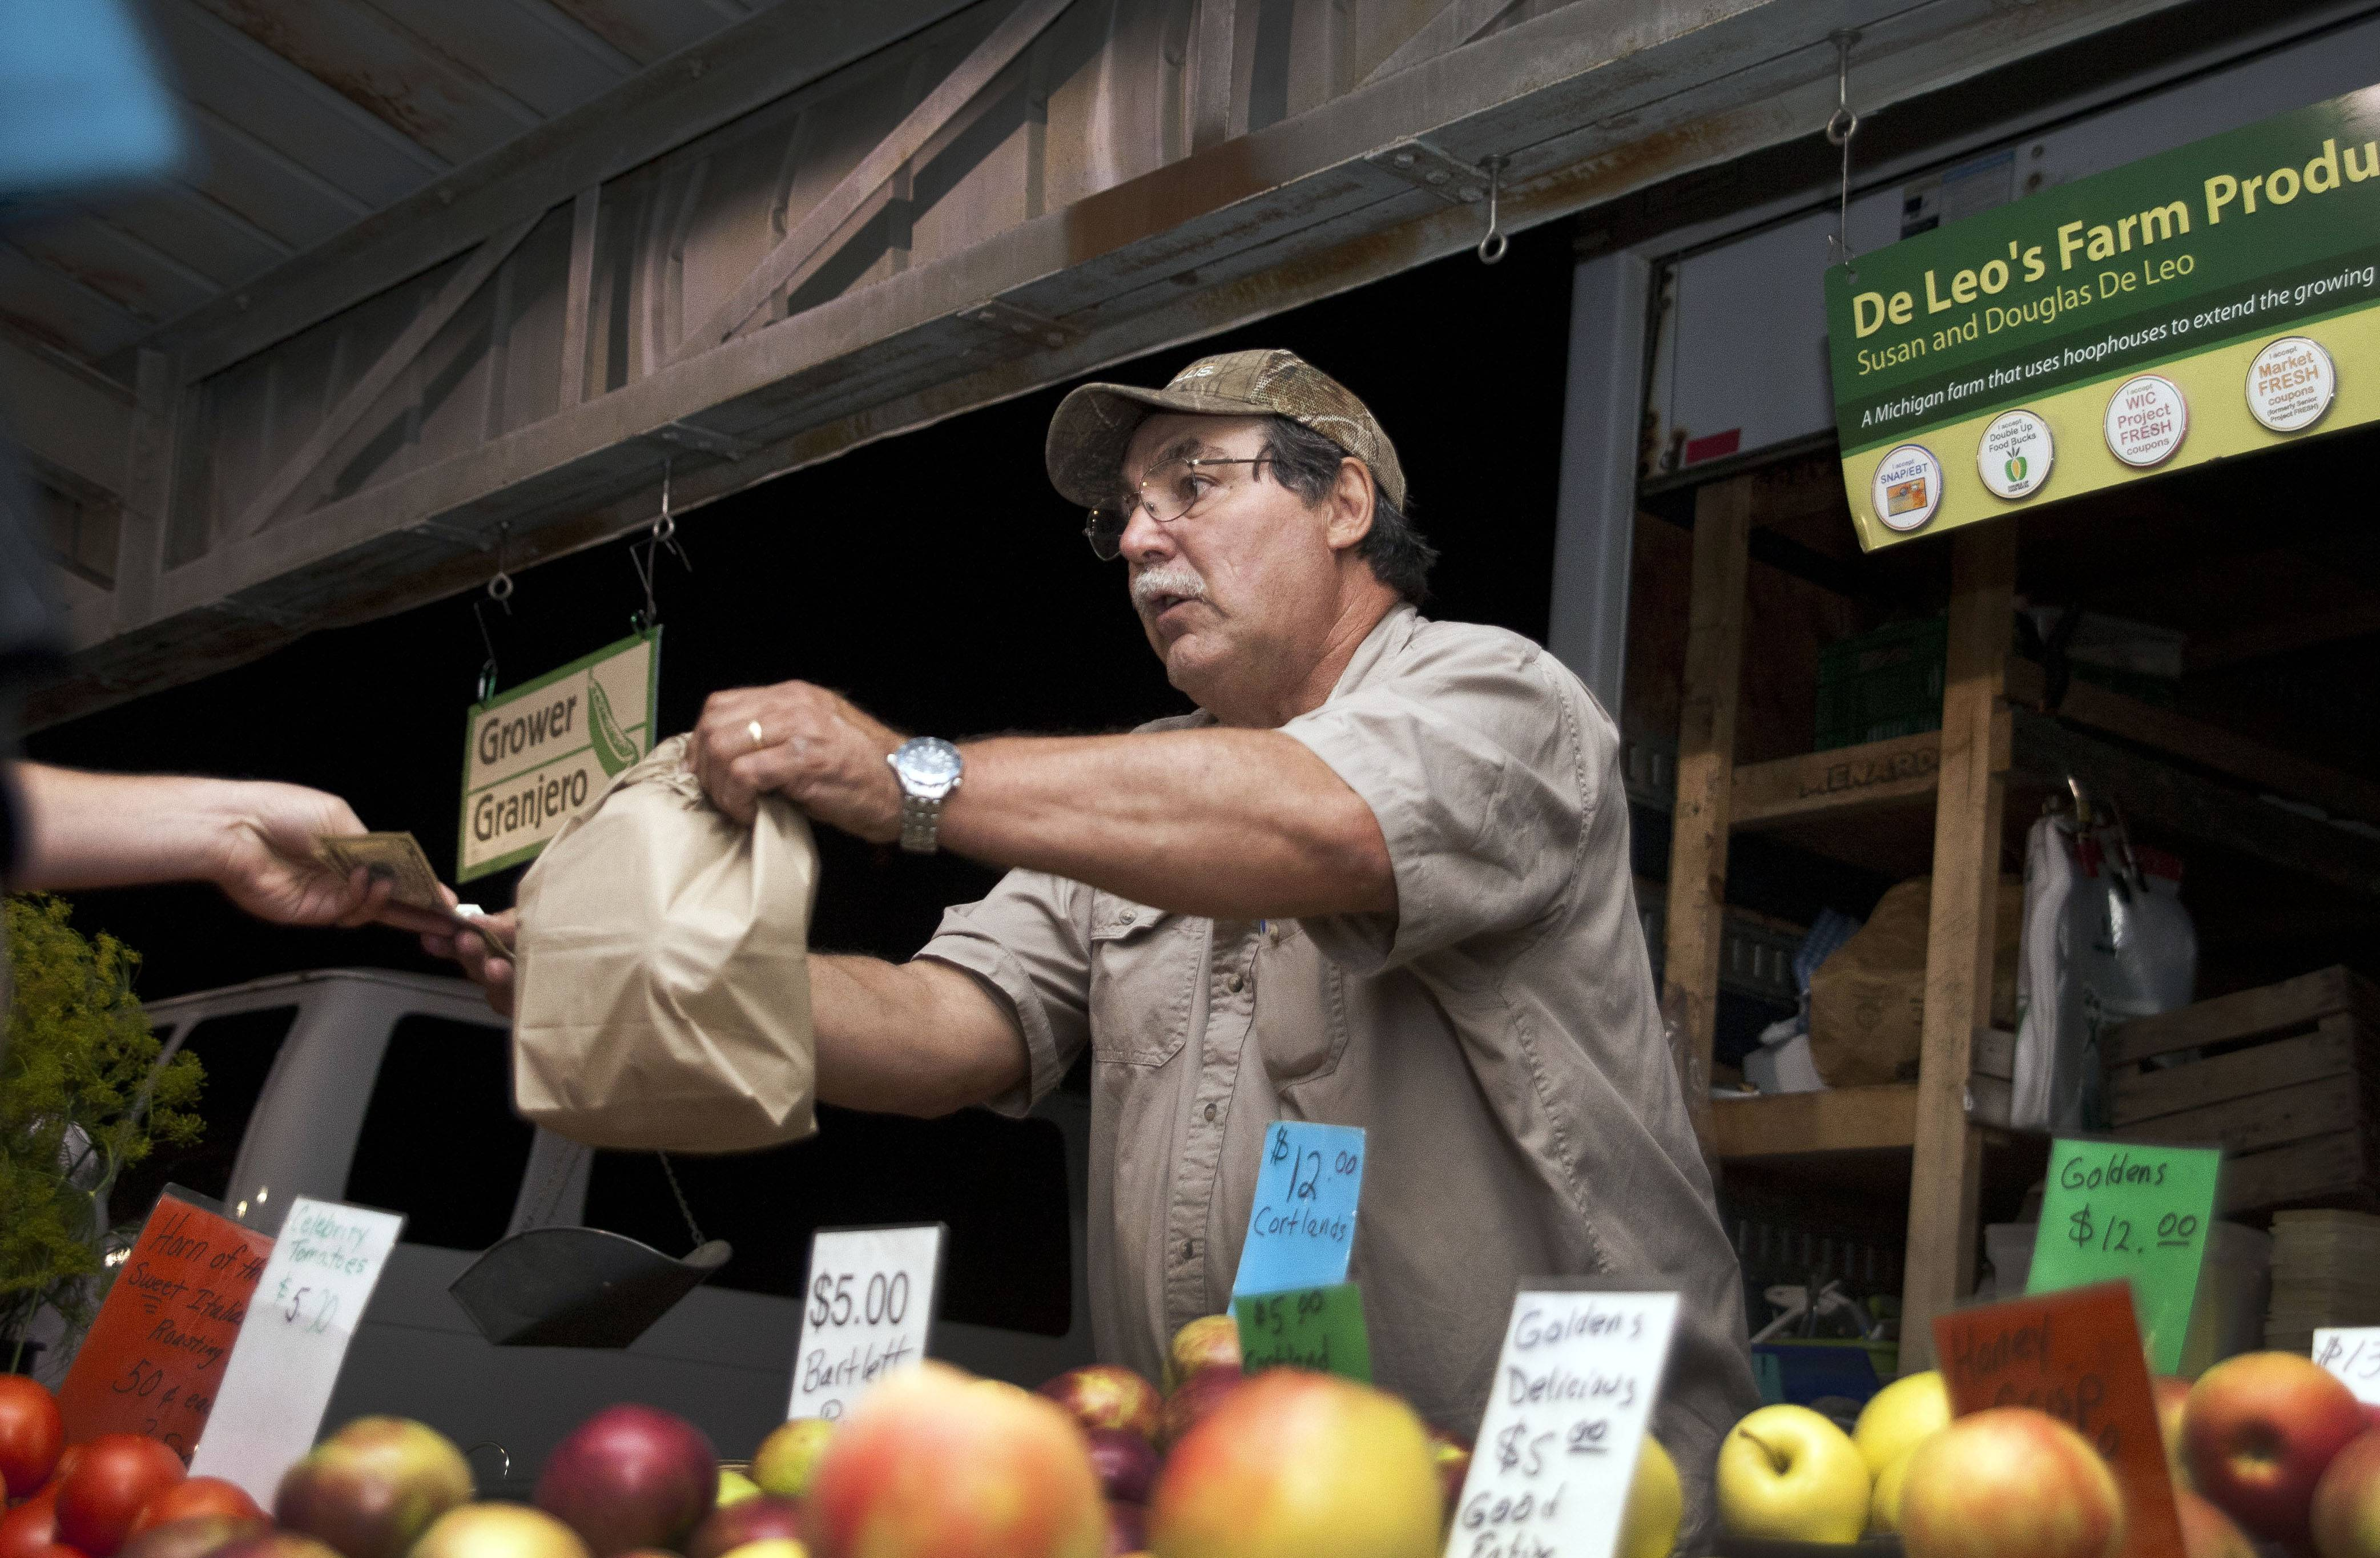 Douglas De Leo hands customers a bag of produce at the Kalamazoo Farmers Market in Kalamazoo, Mich. U.S. consumer confidence dropped in September after hitting the highest level in nearly seven years in August.